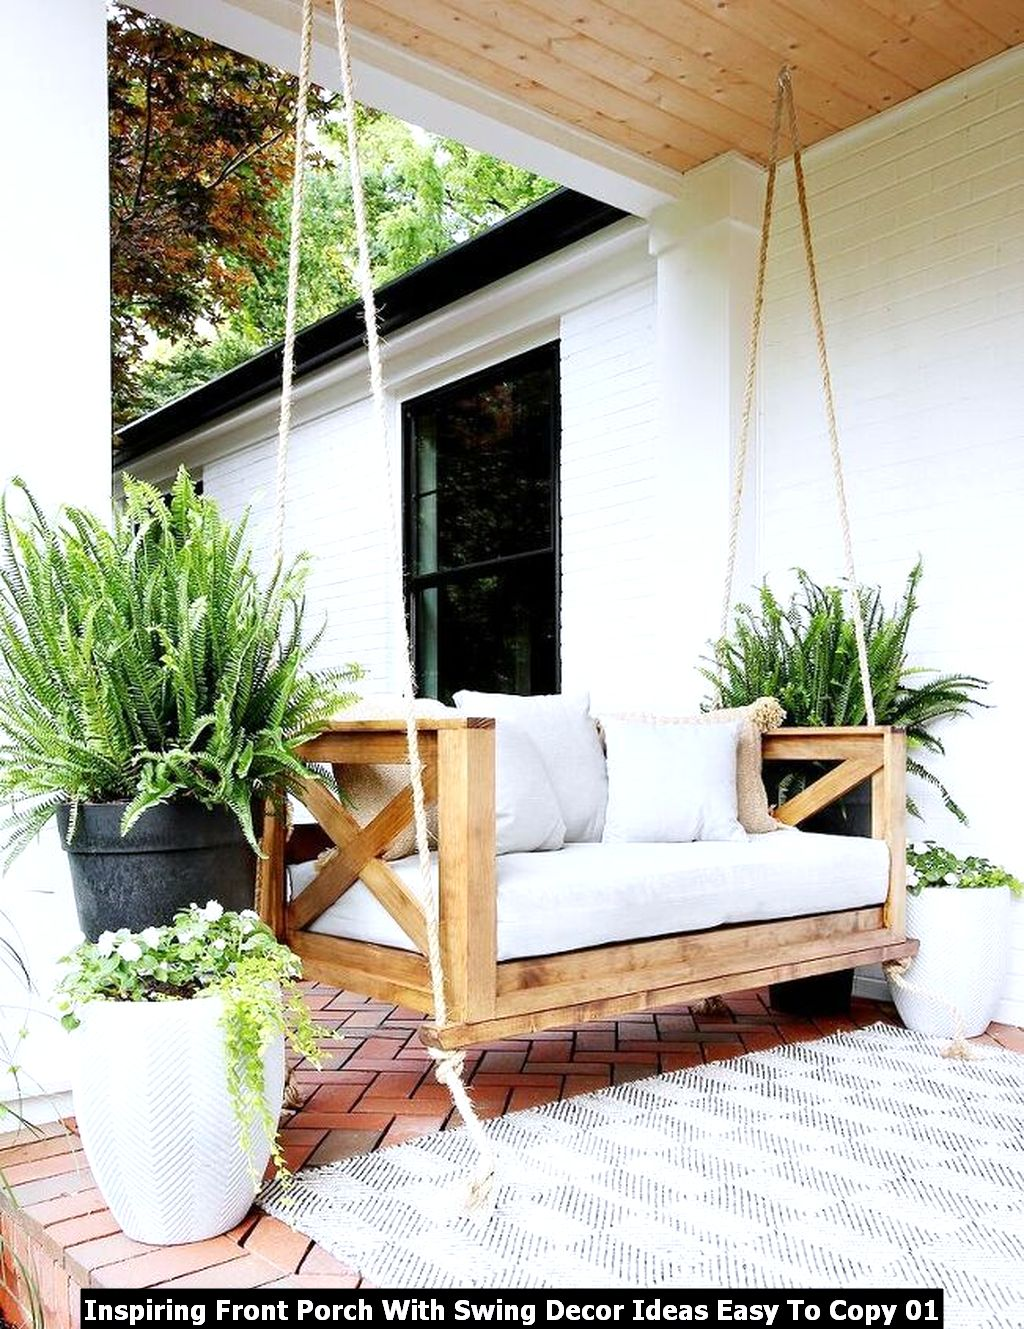 Inspiring Front Porch With Swing Decor Ideas Easy To Copy 01